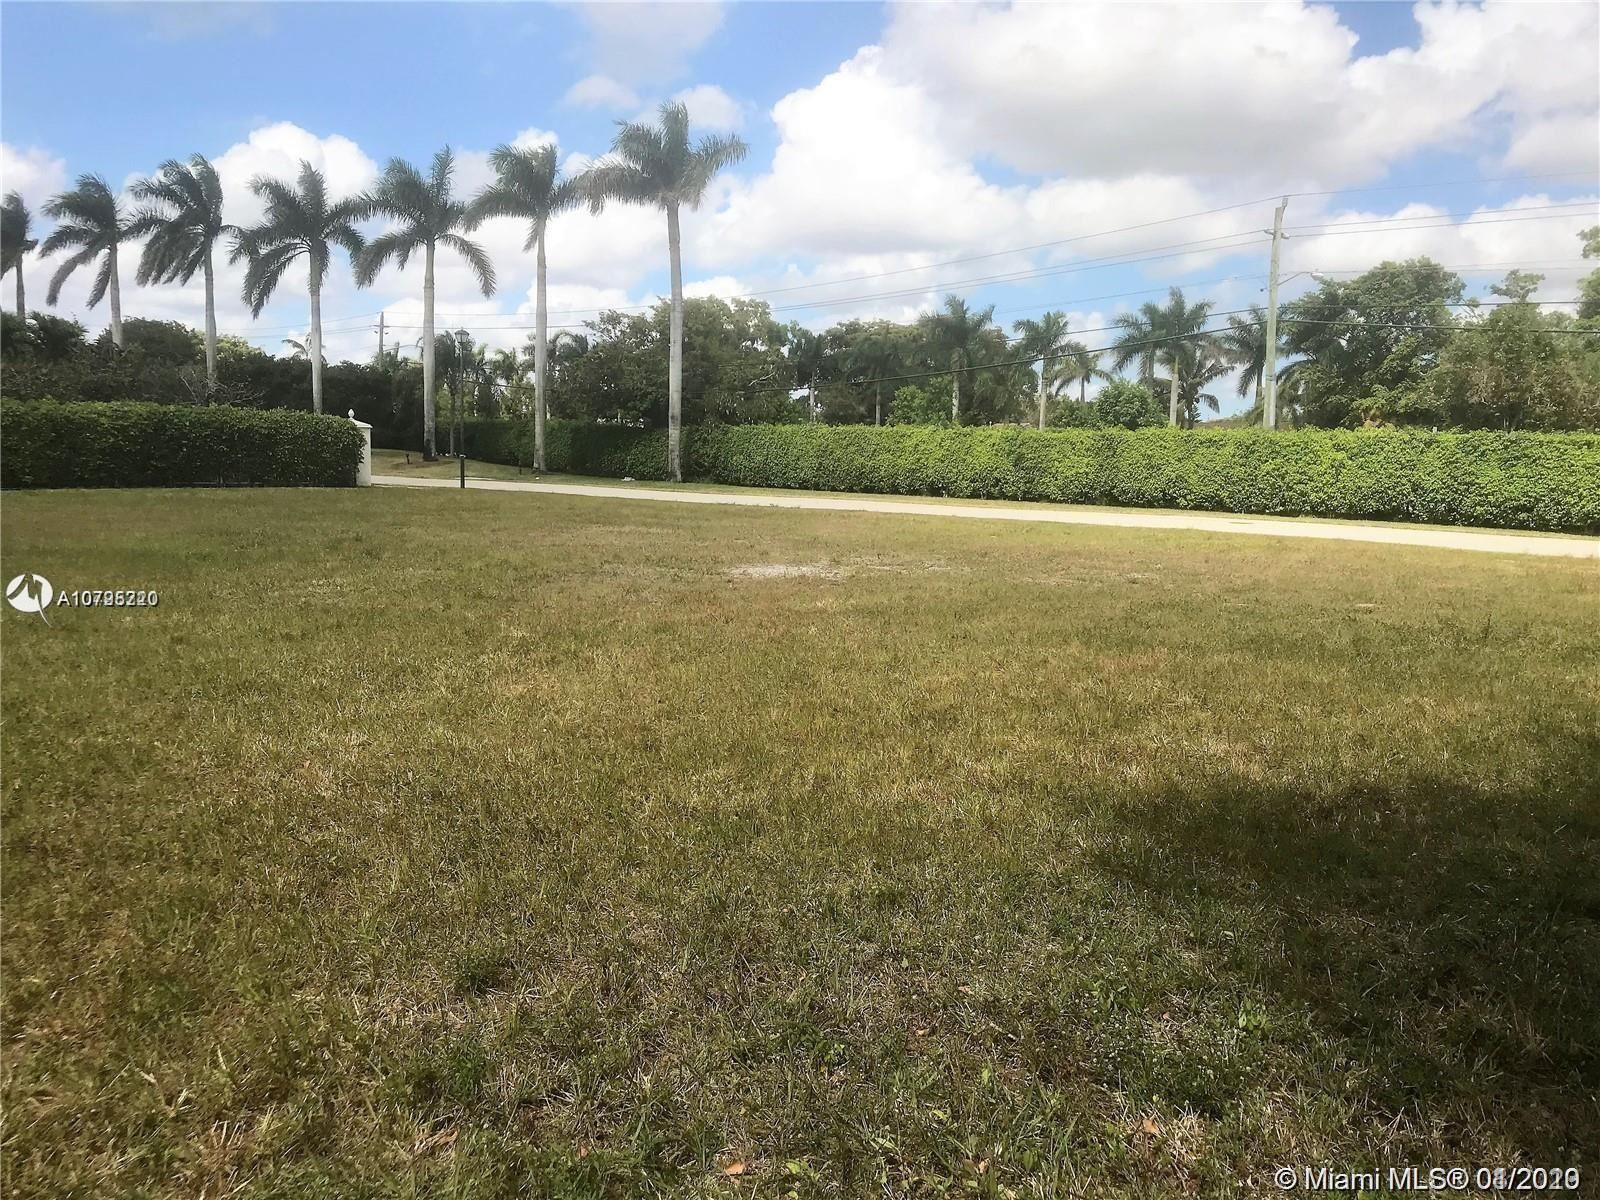 Photo 7 of Listing MLS a10795220 in 441 Ranch Rd Weston FL 33326